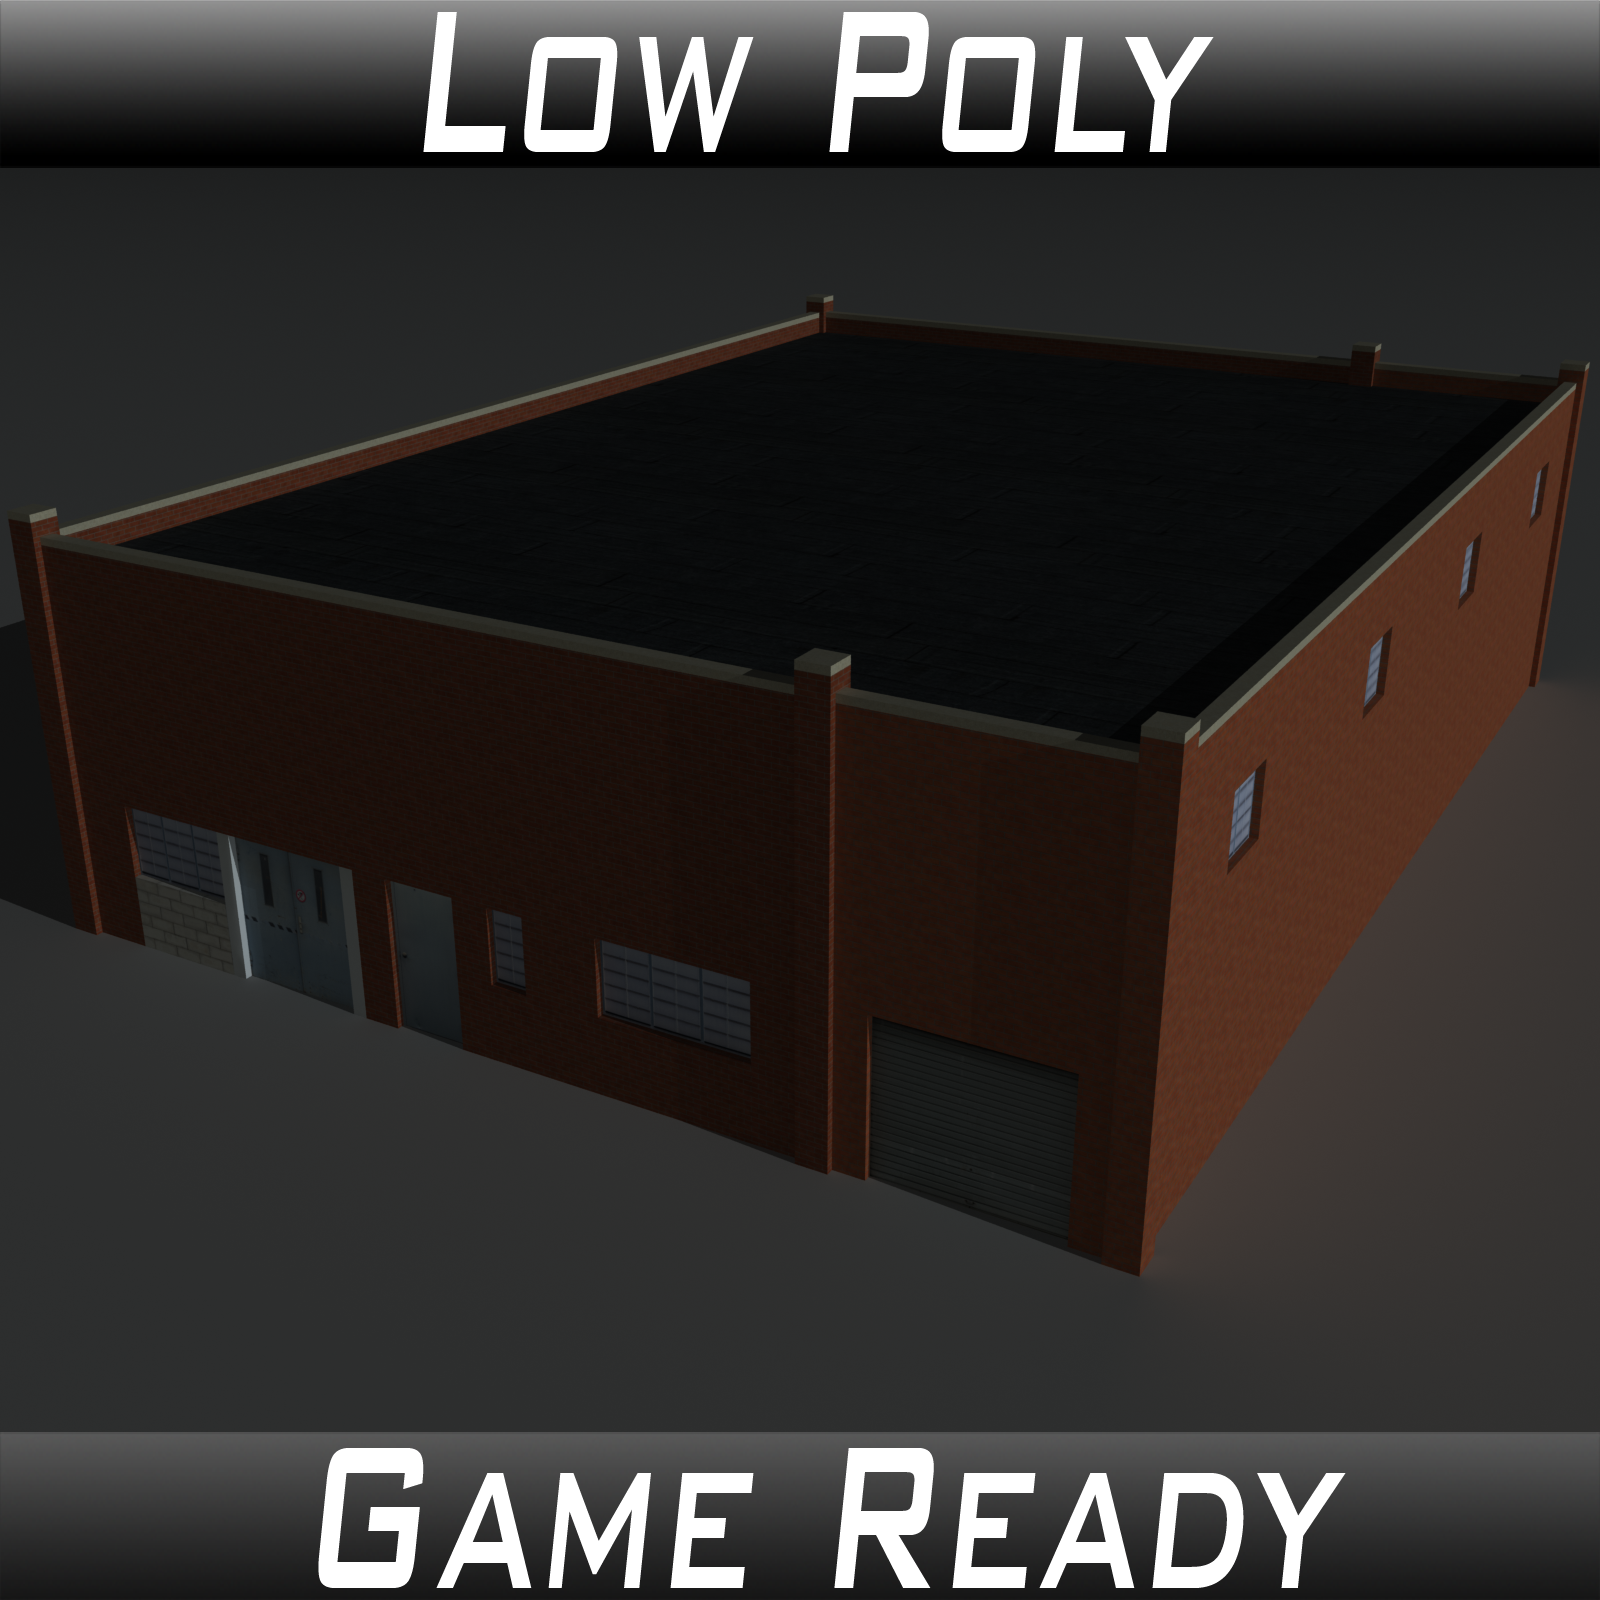 Low Poly Factory Building 25 - Extended Licence